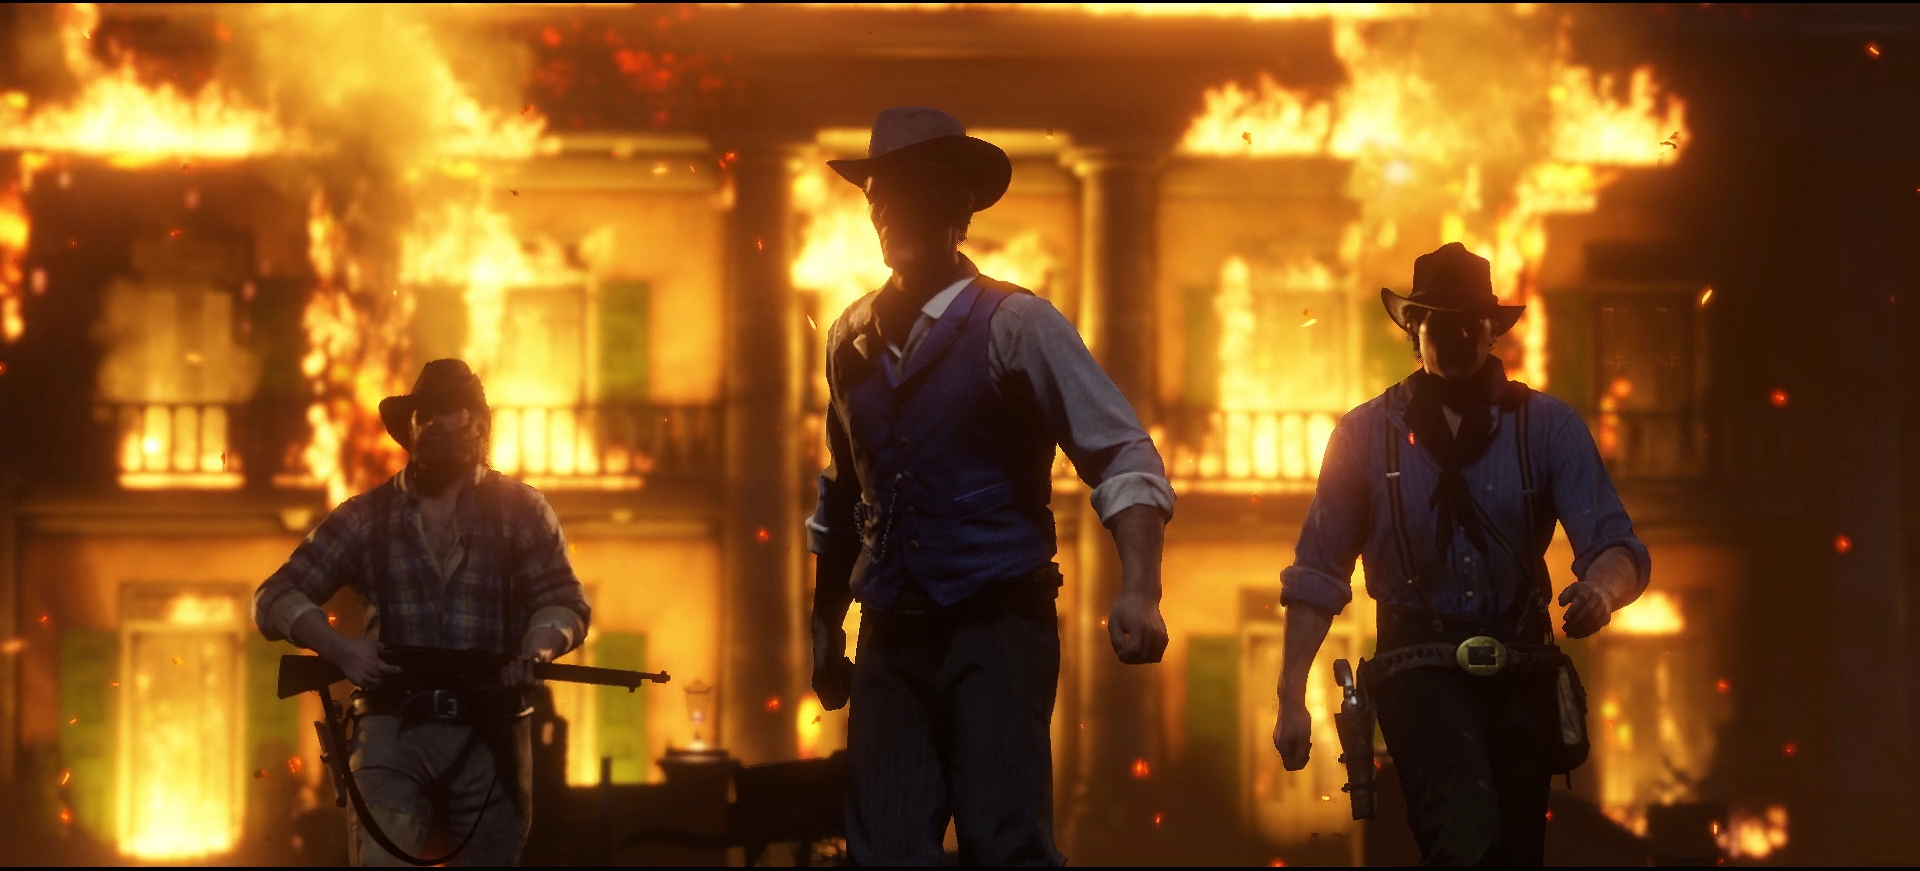 Rockstar Pushes Red Dead Redemption 2 Release to October 26, 2018